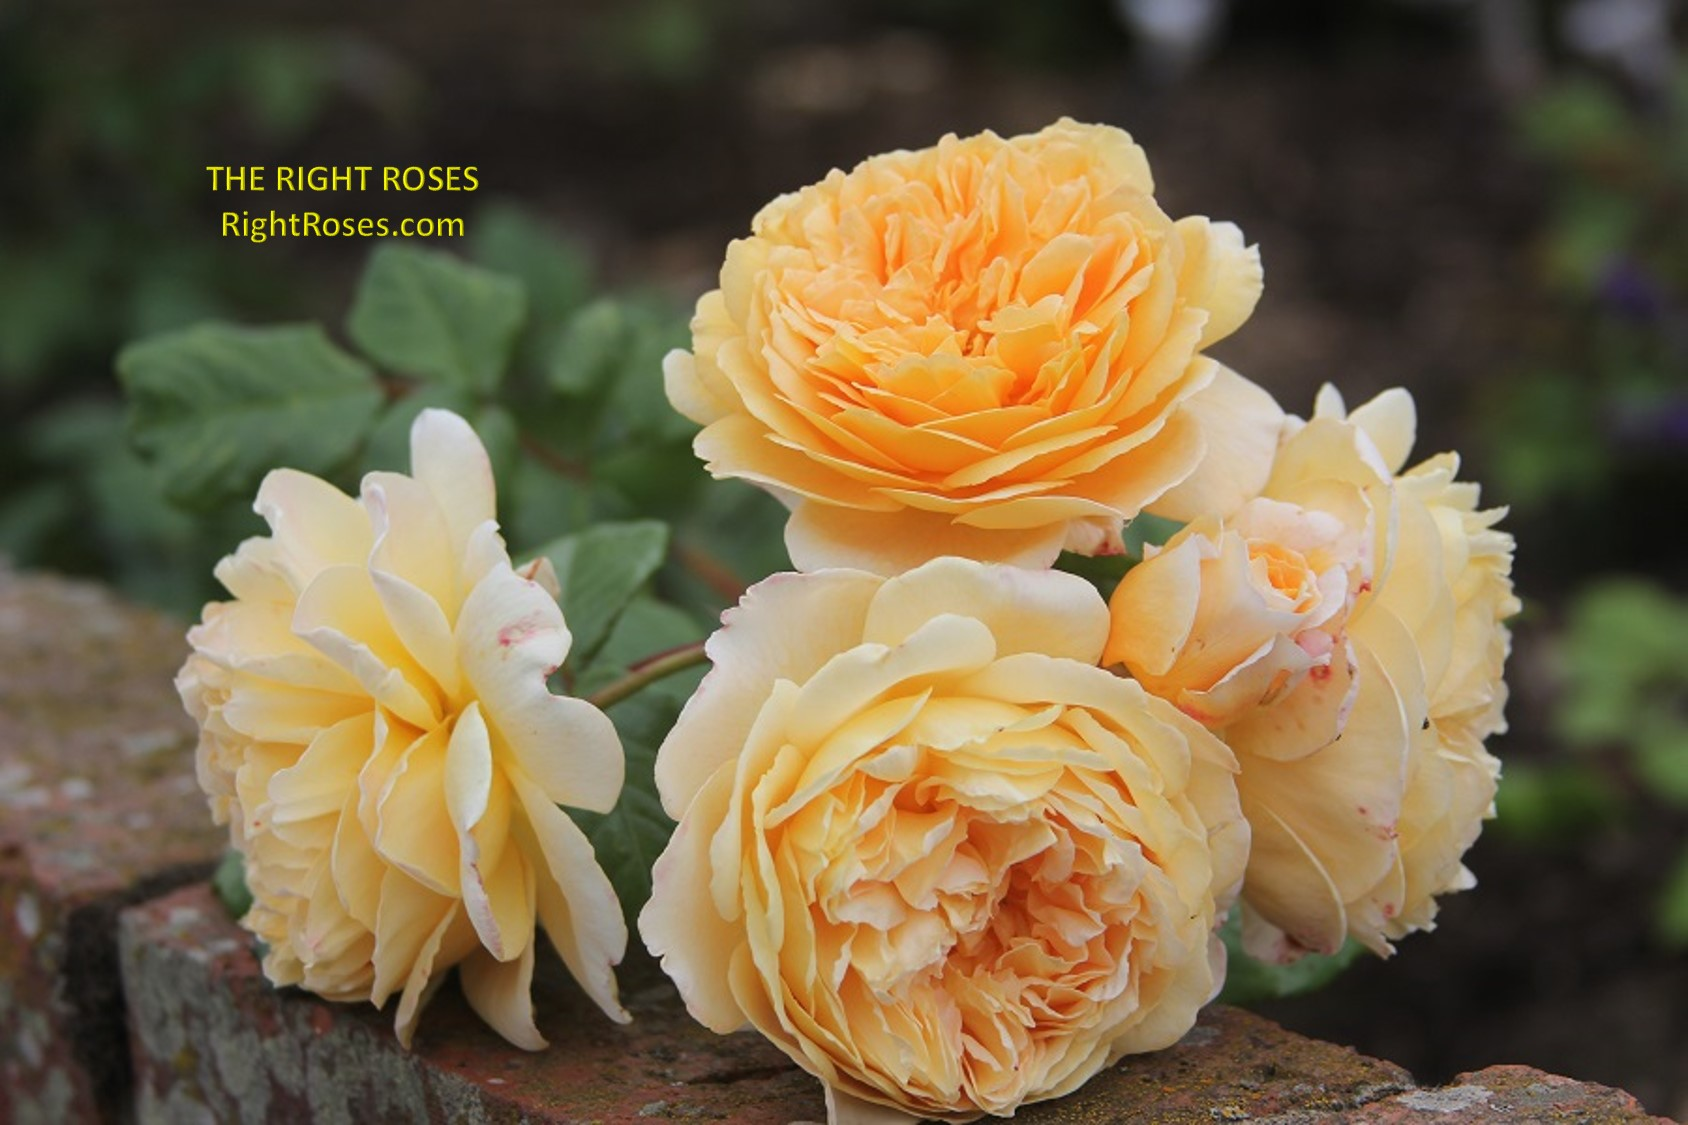 crown princess margareta rose review the right roses score best top garden store david austin english roses rose products rose rating the right leap rose food